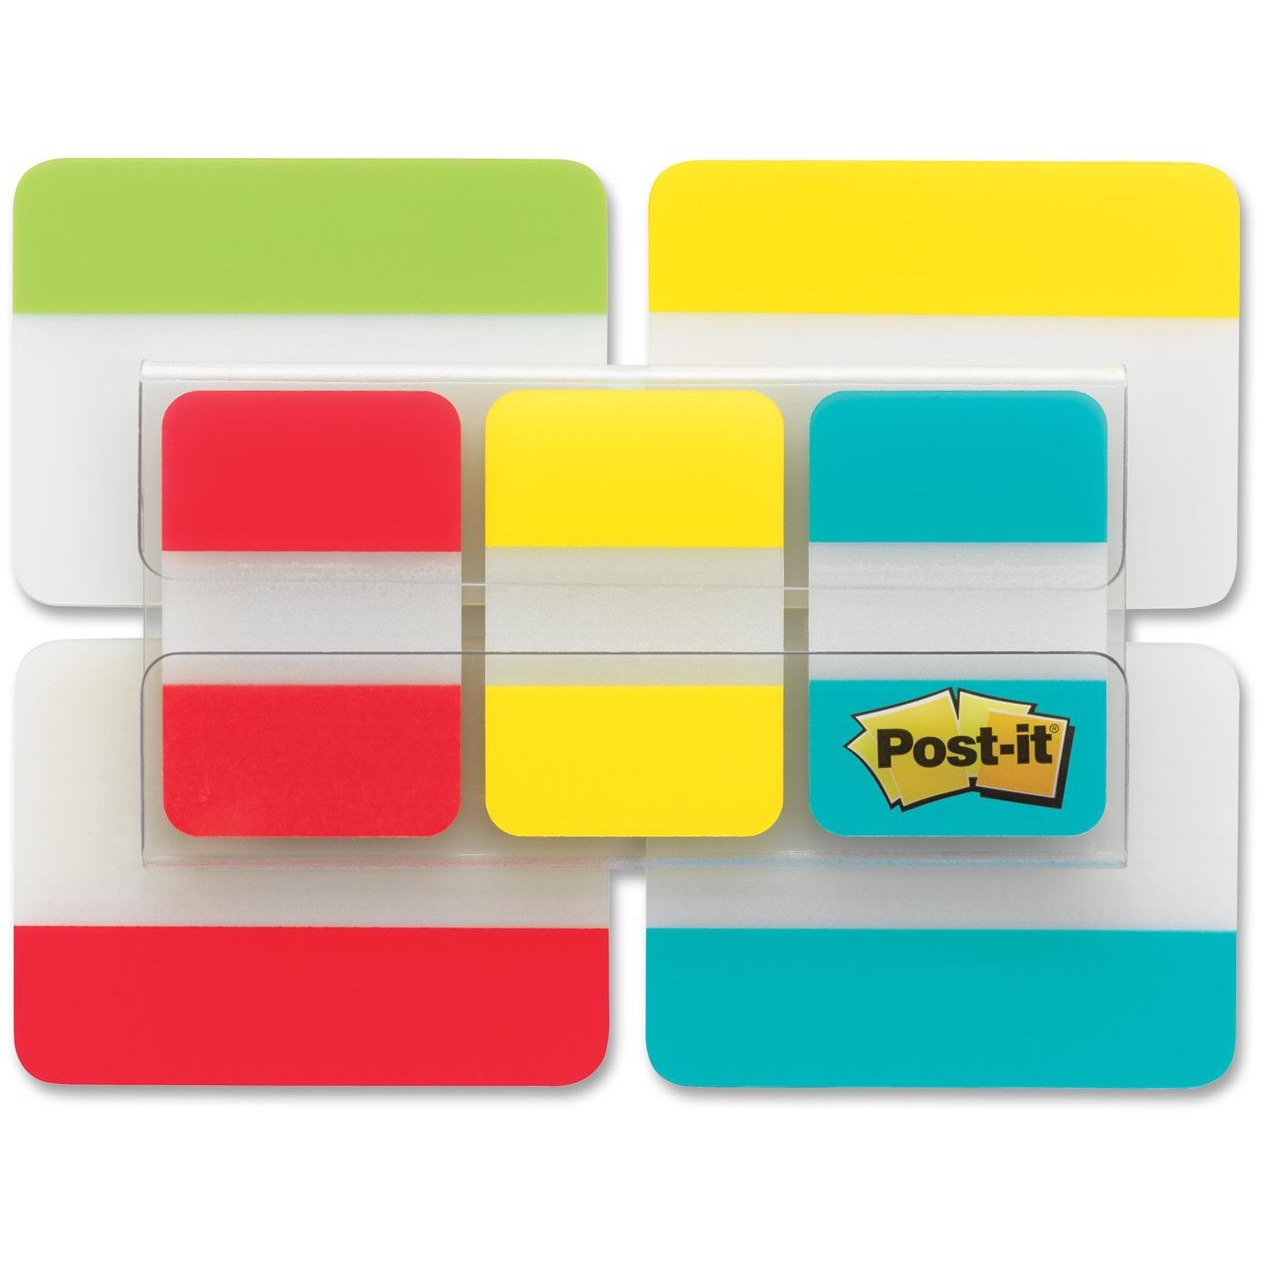 Post-it Tabs Value Pack, Assorted Primary Colors, 1 in. and 2 in. Sizes, 114 Tabs/Pack